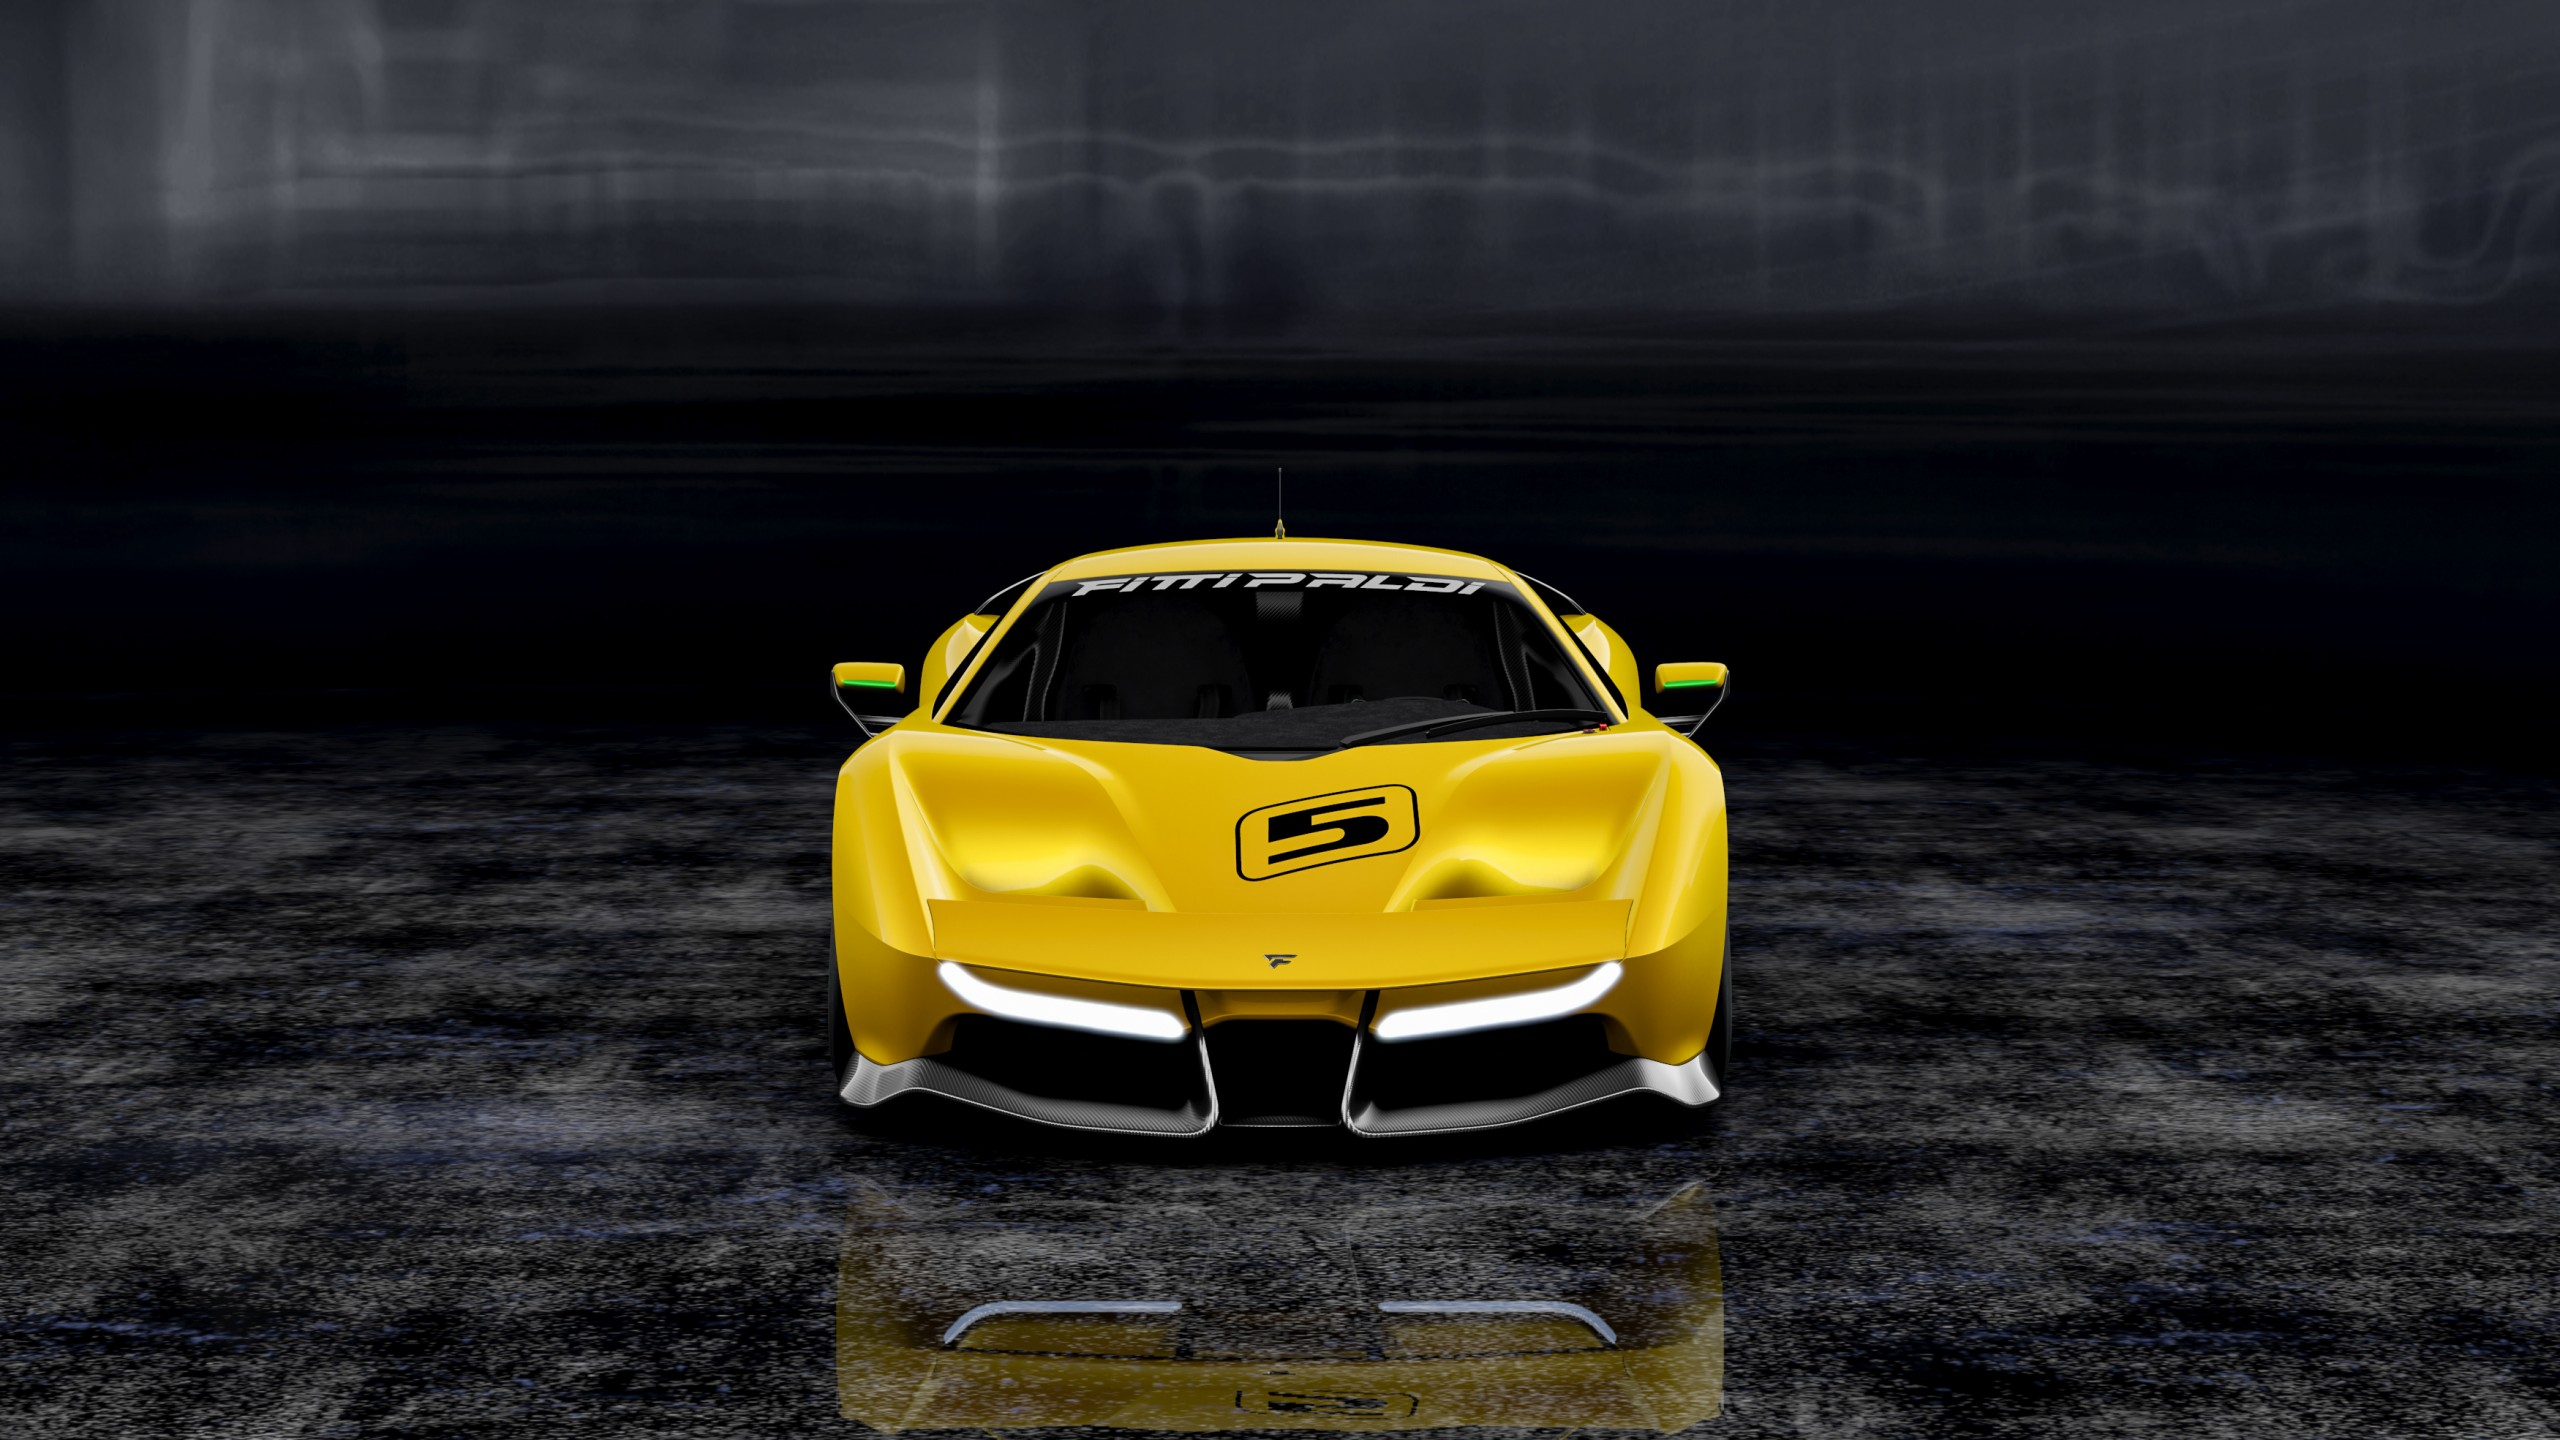 2017 Fittipaldi Ef7 Vision Gran Turismo 2 Wallpaper Hd